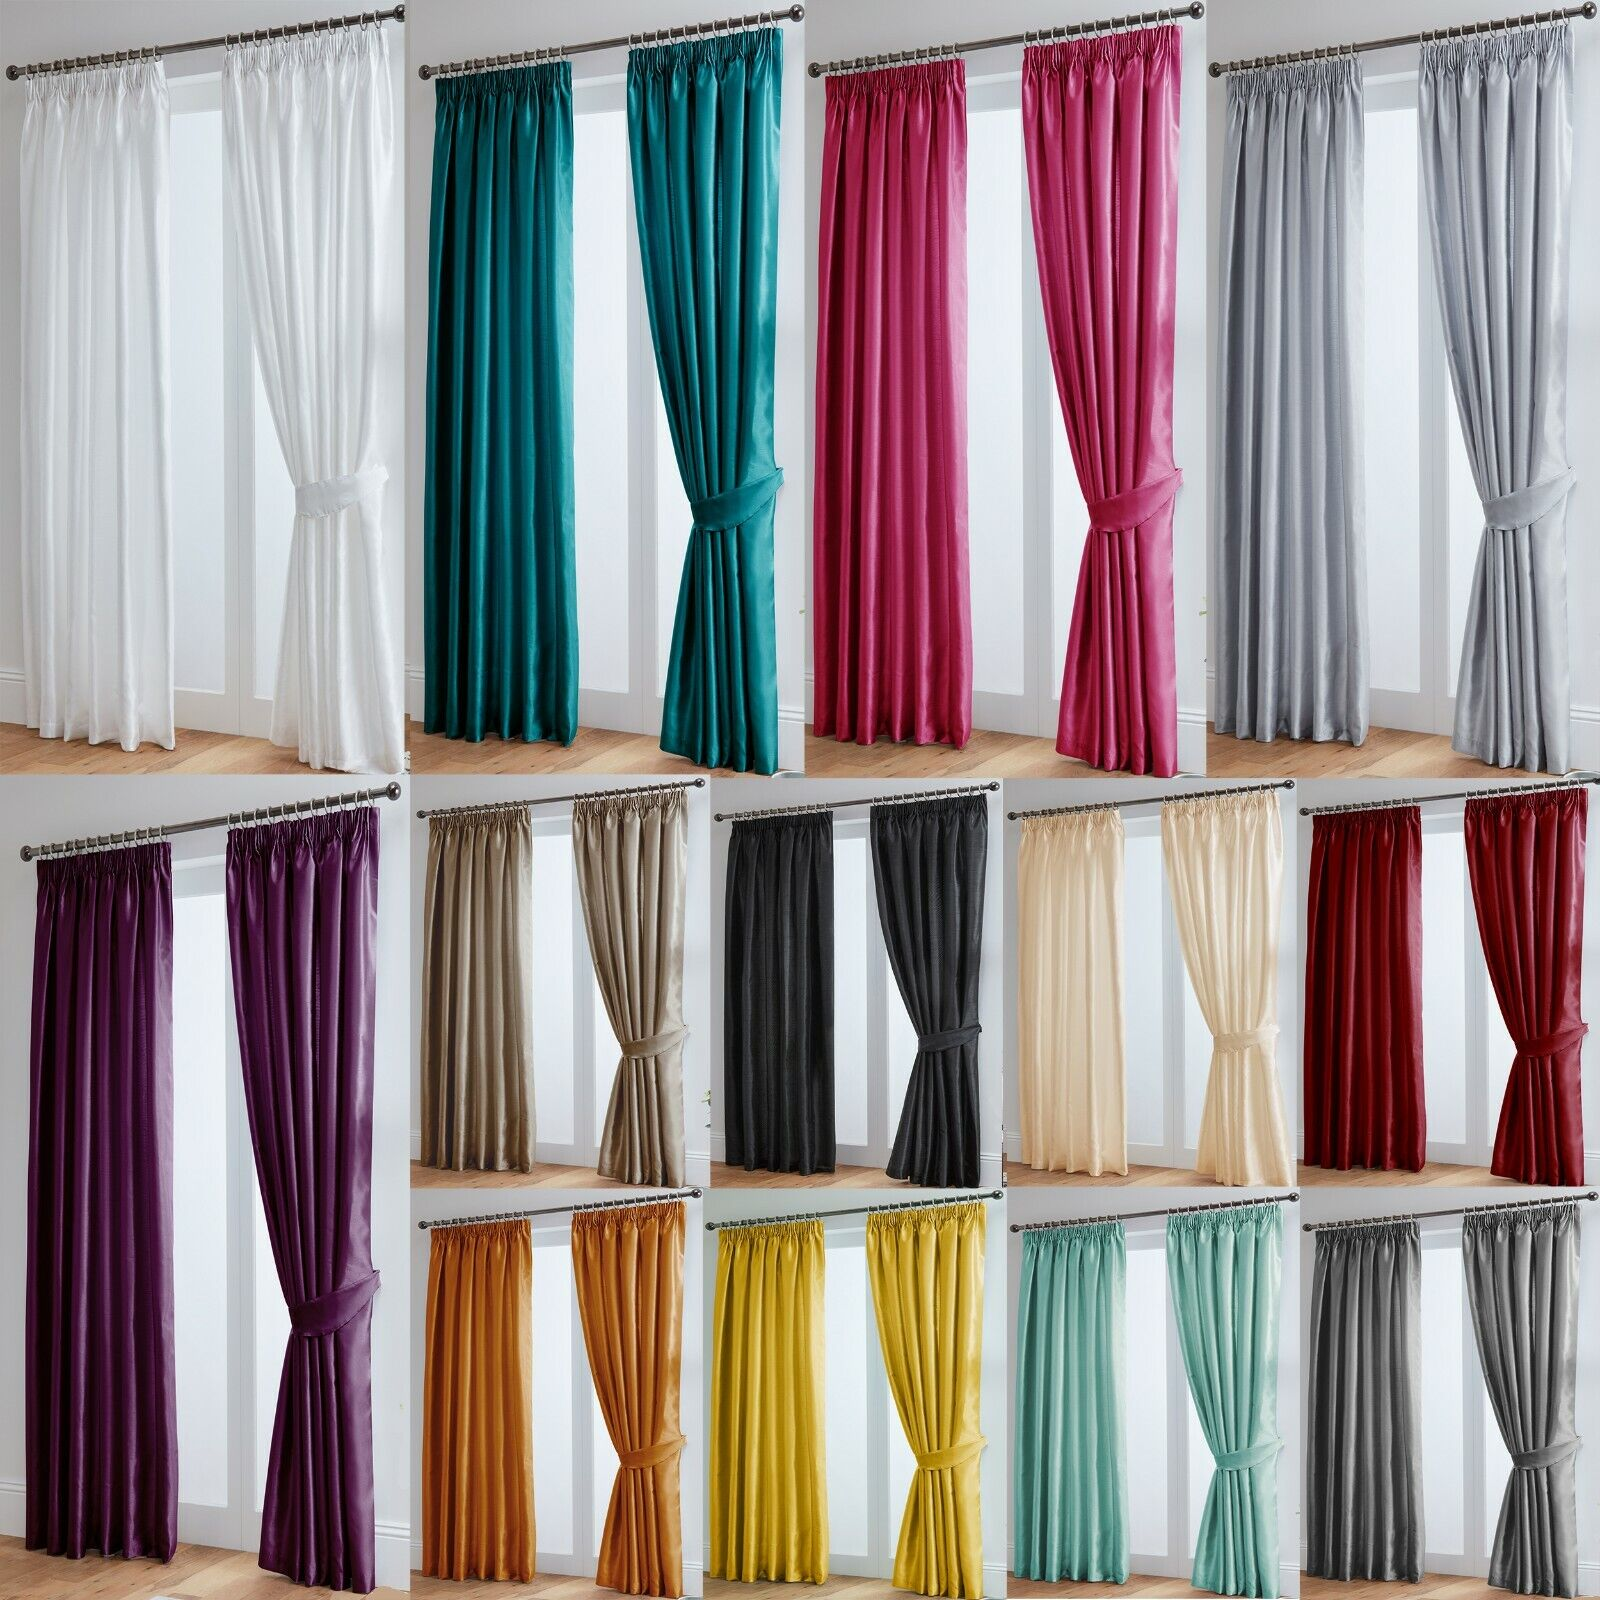 curtains - Faux Silk Curtains Luxury Fully Lined - Pencil Pleat Tape Top - Free Tiebacks